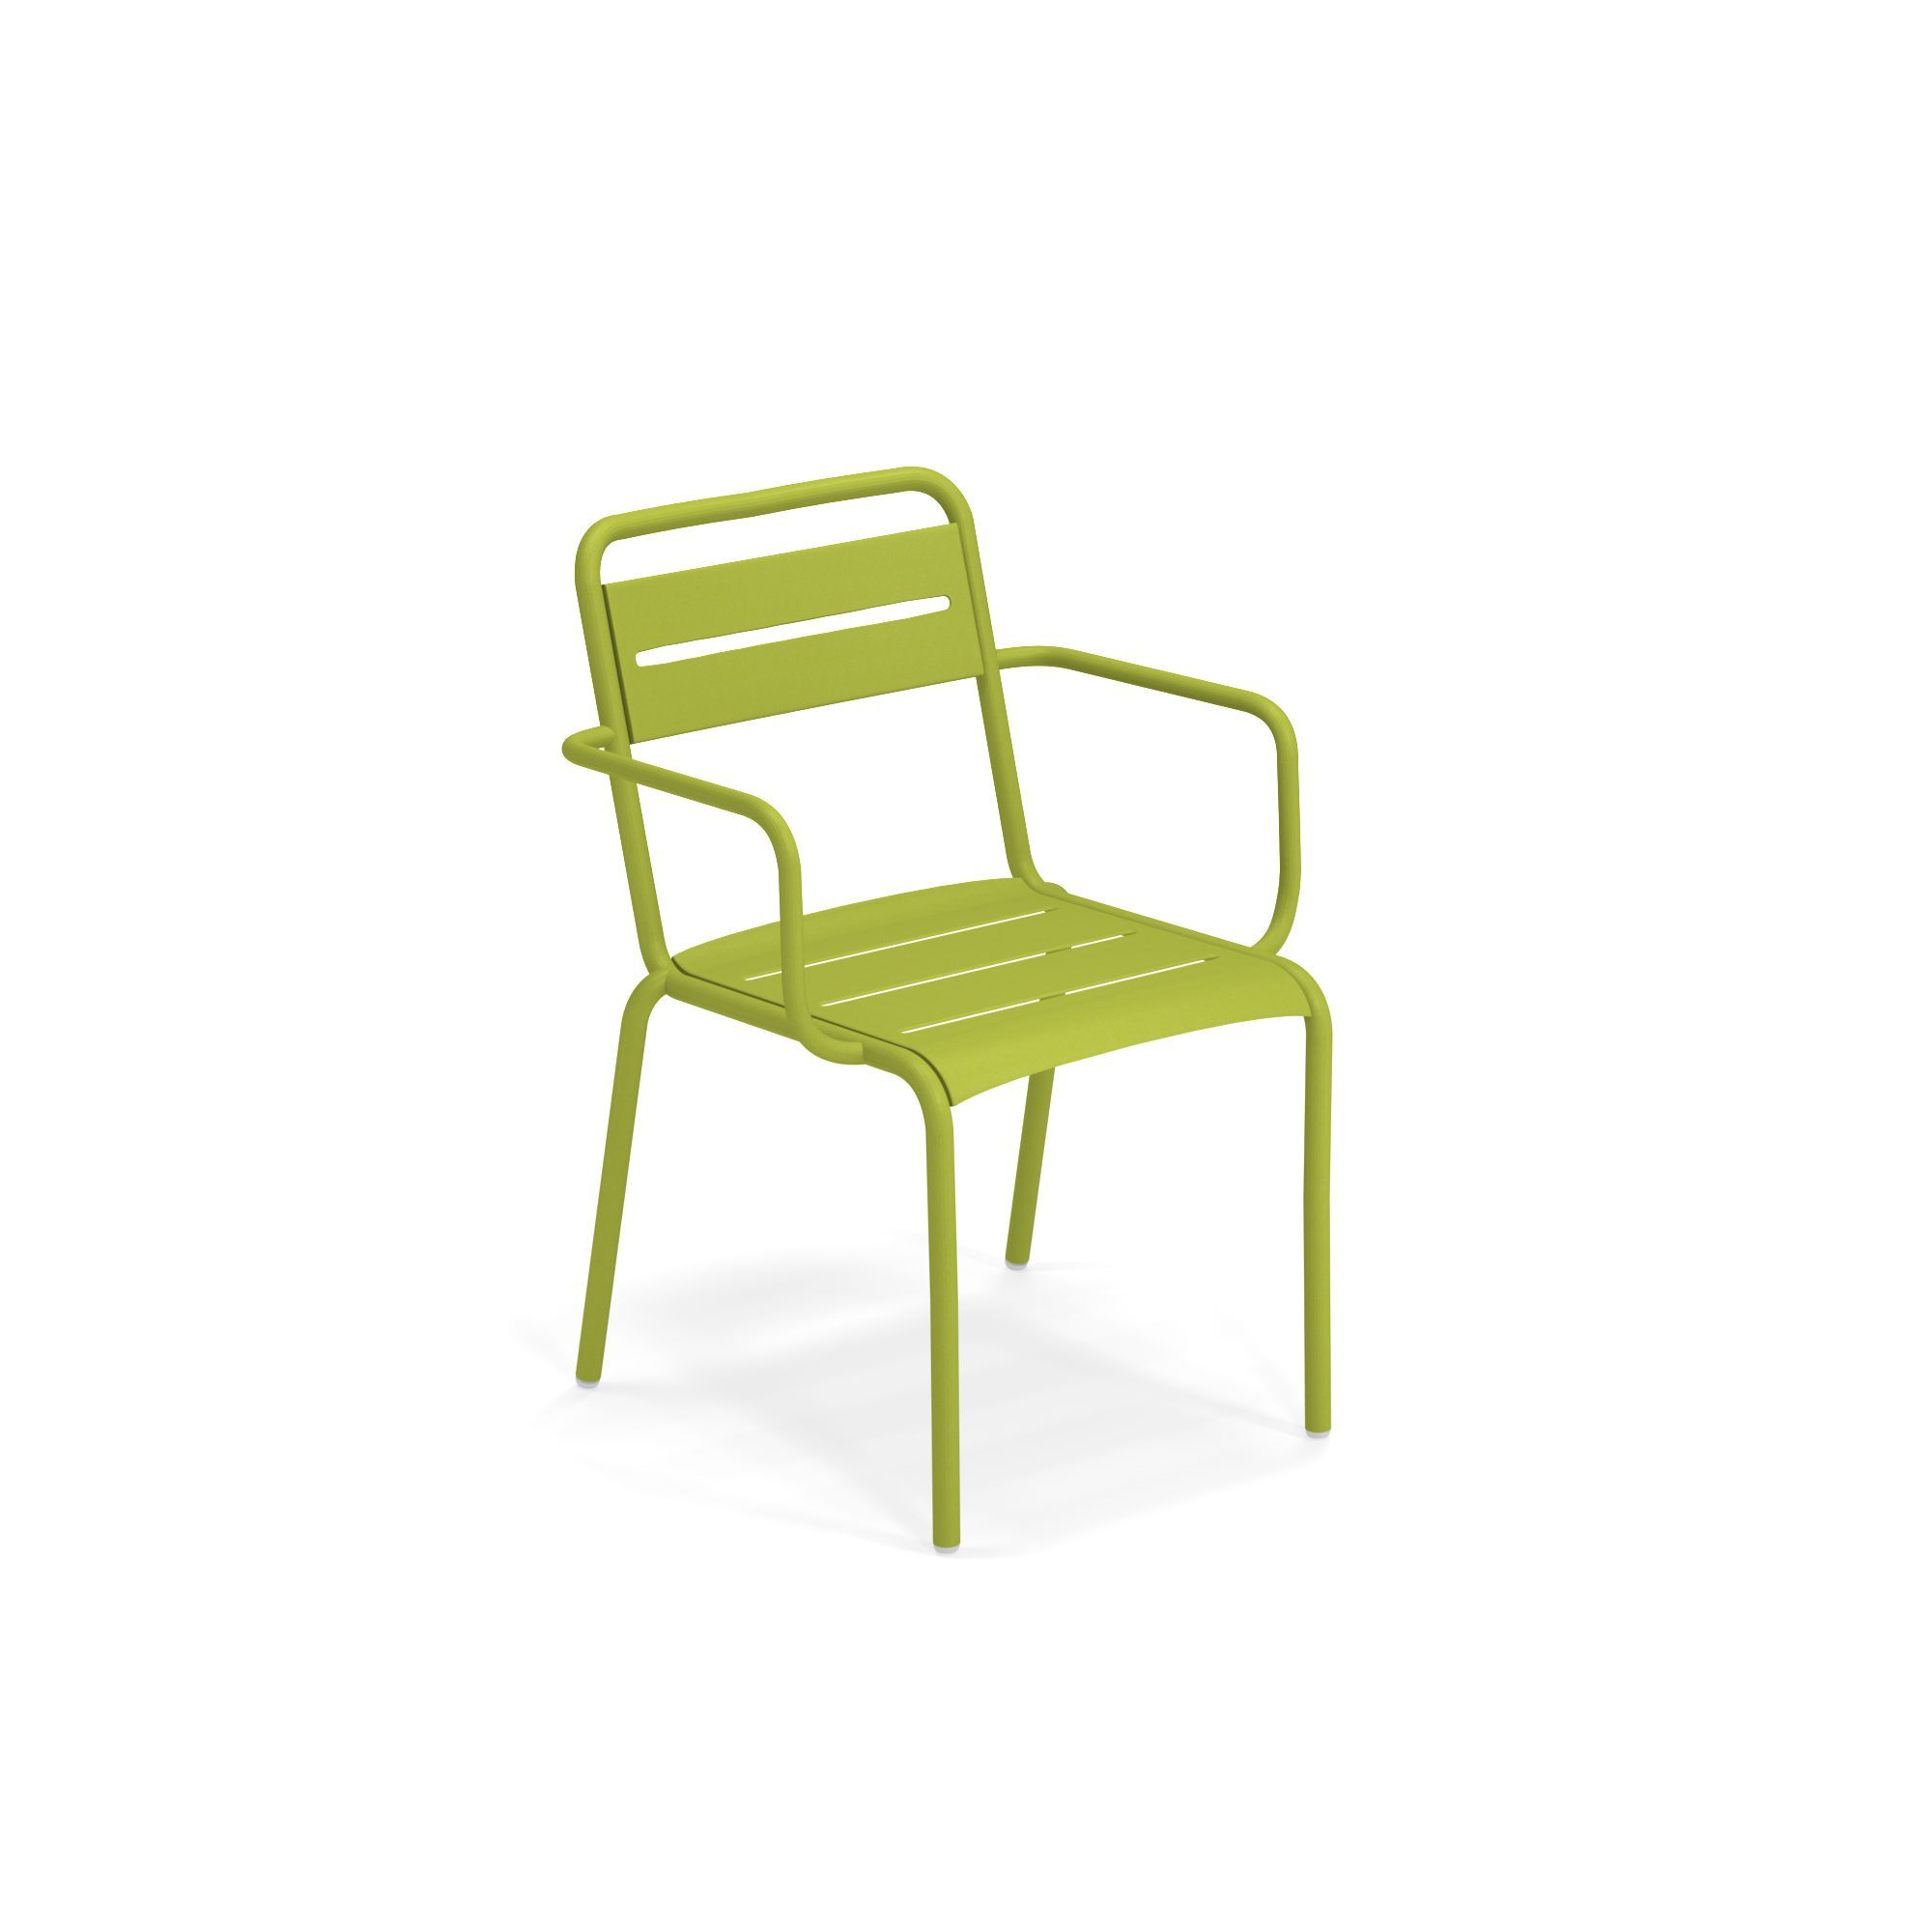 emuamericas, llc 162-60 chair, armchair, stacking, outdoor